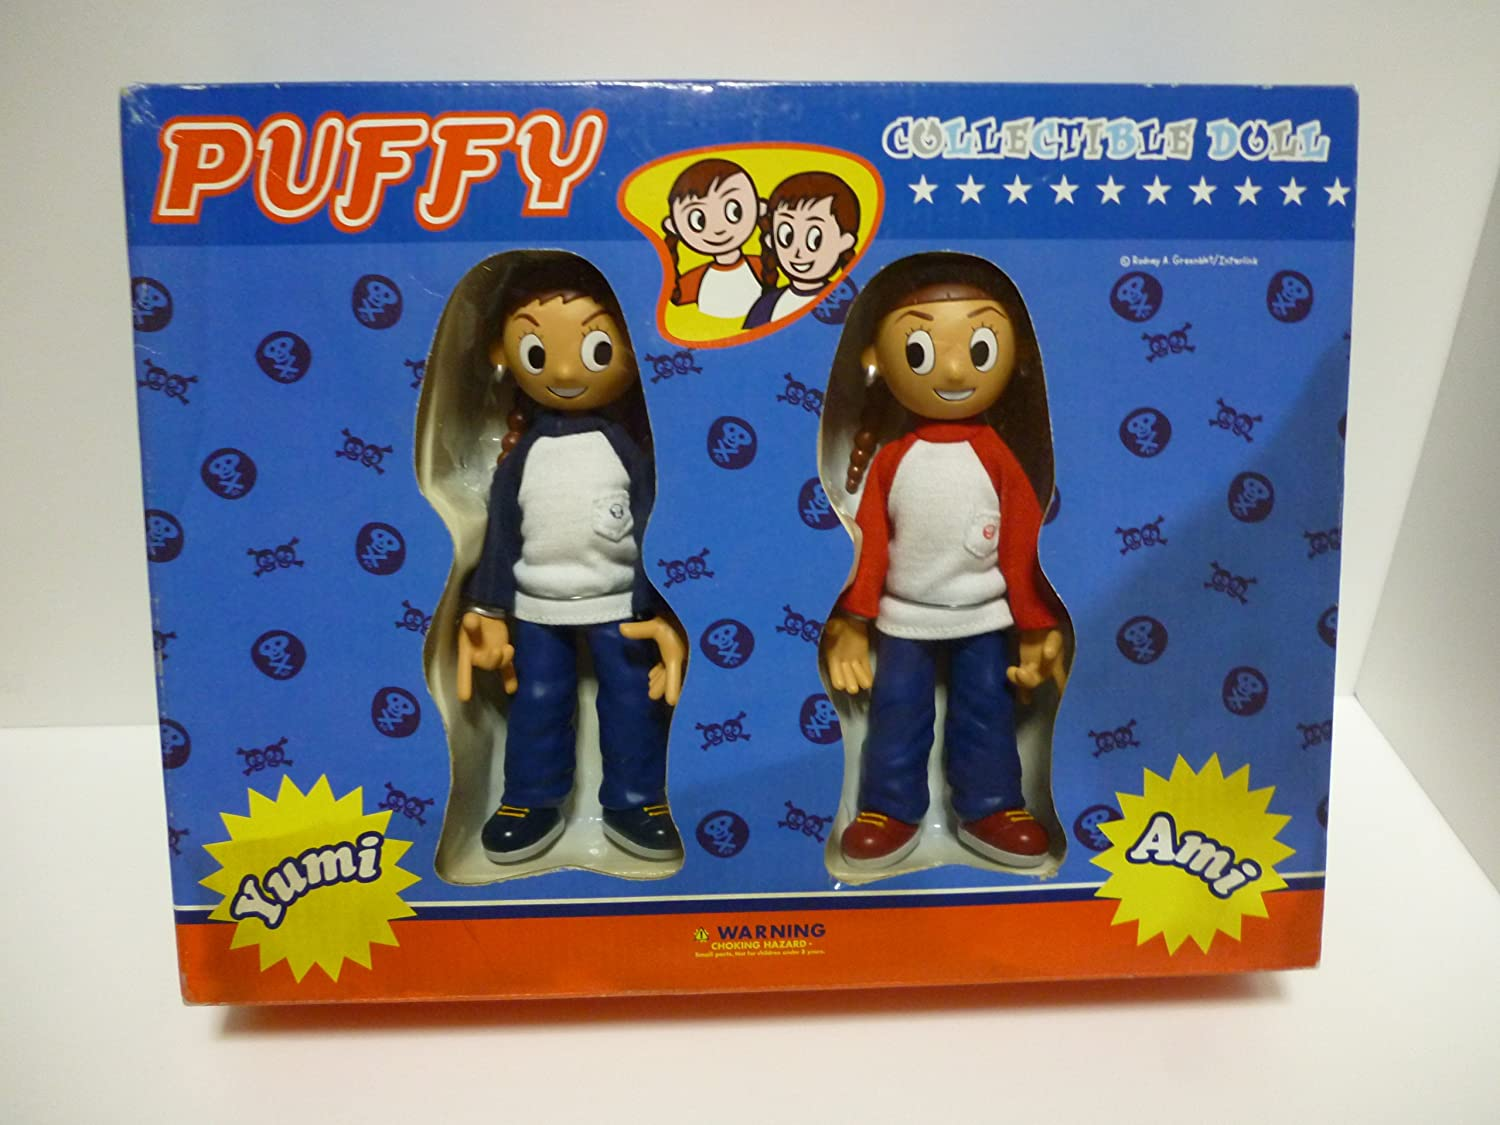 COLLECTIBLE DOLL PUFFY Puffy Figur (Japan-Import)